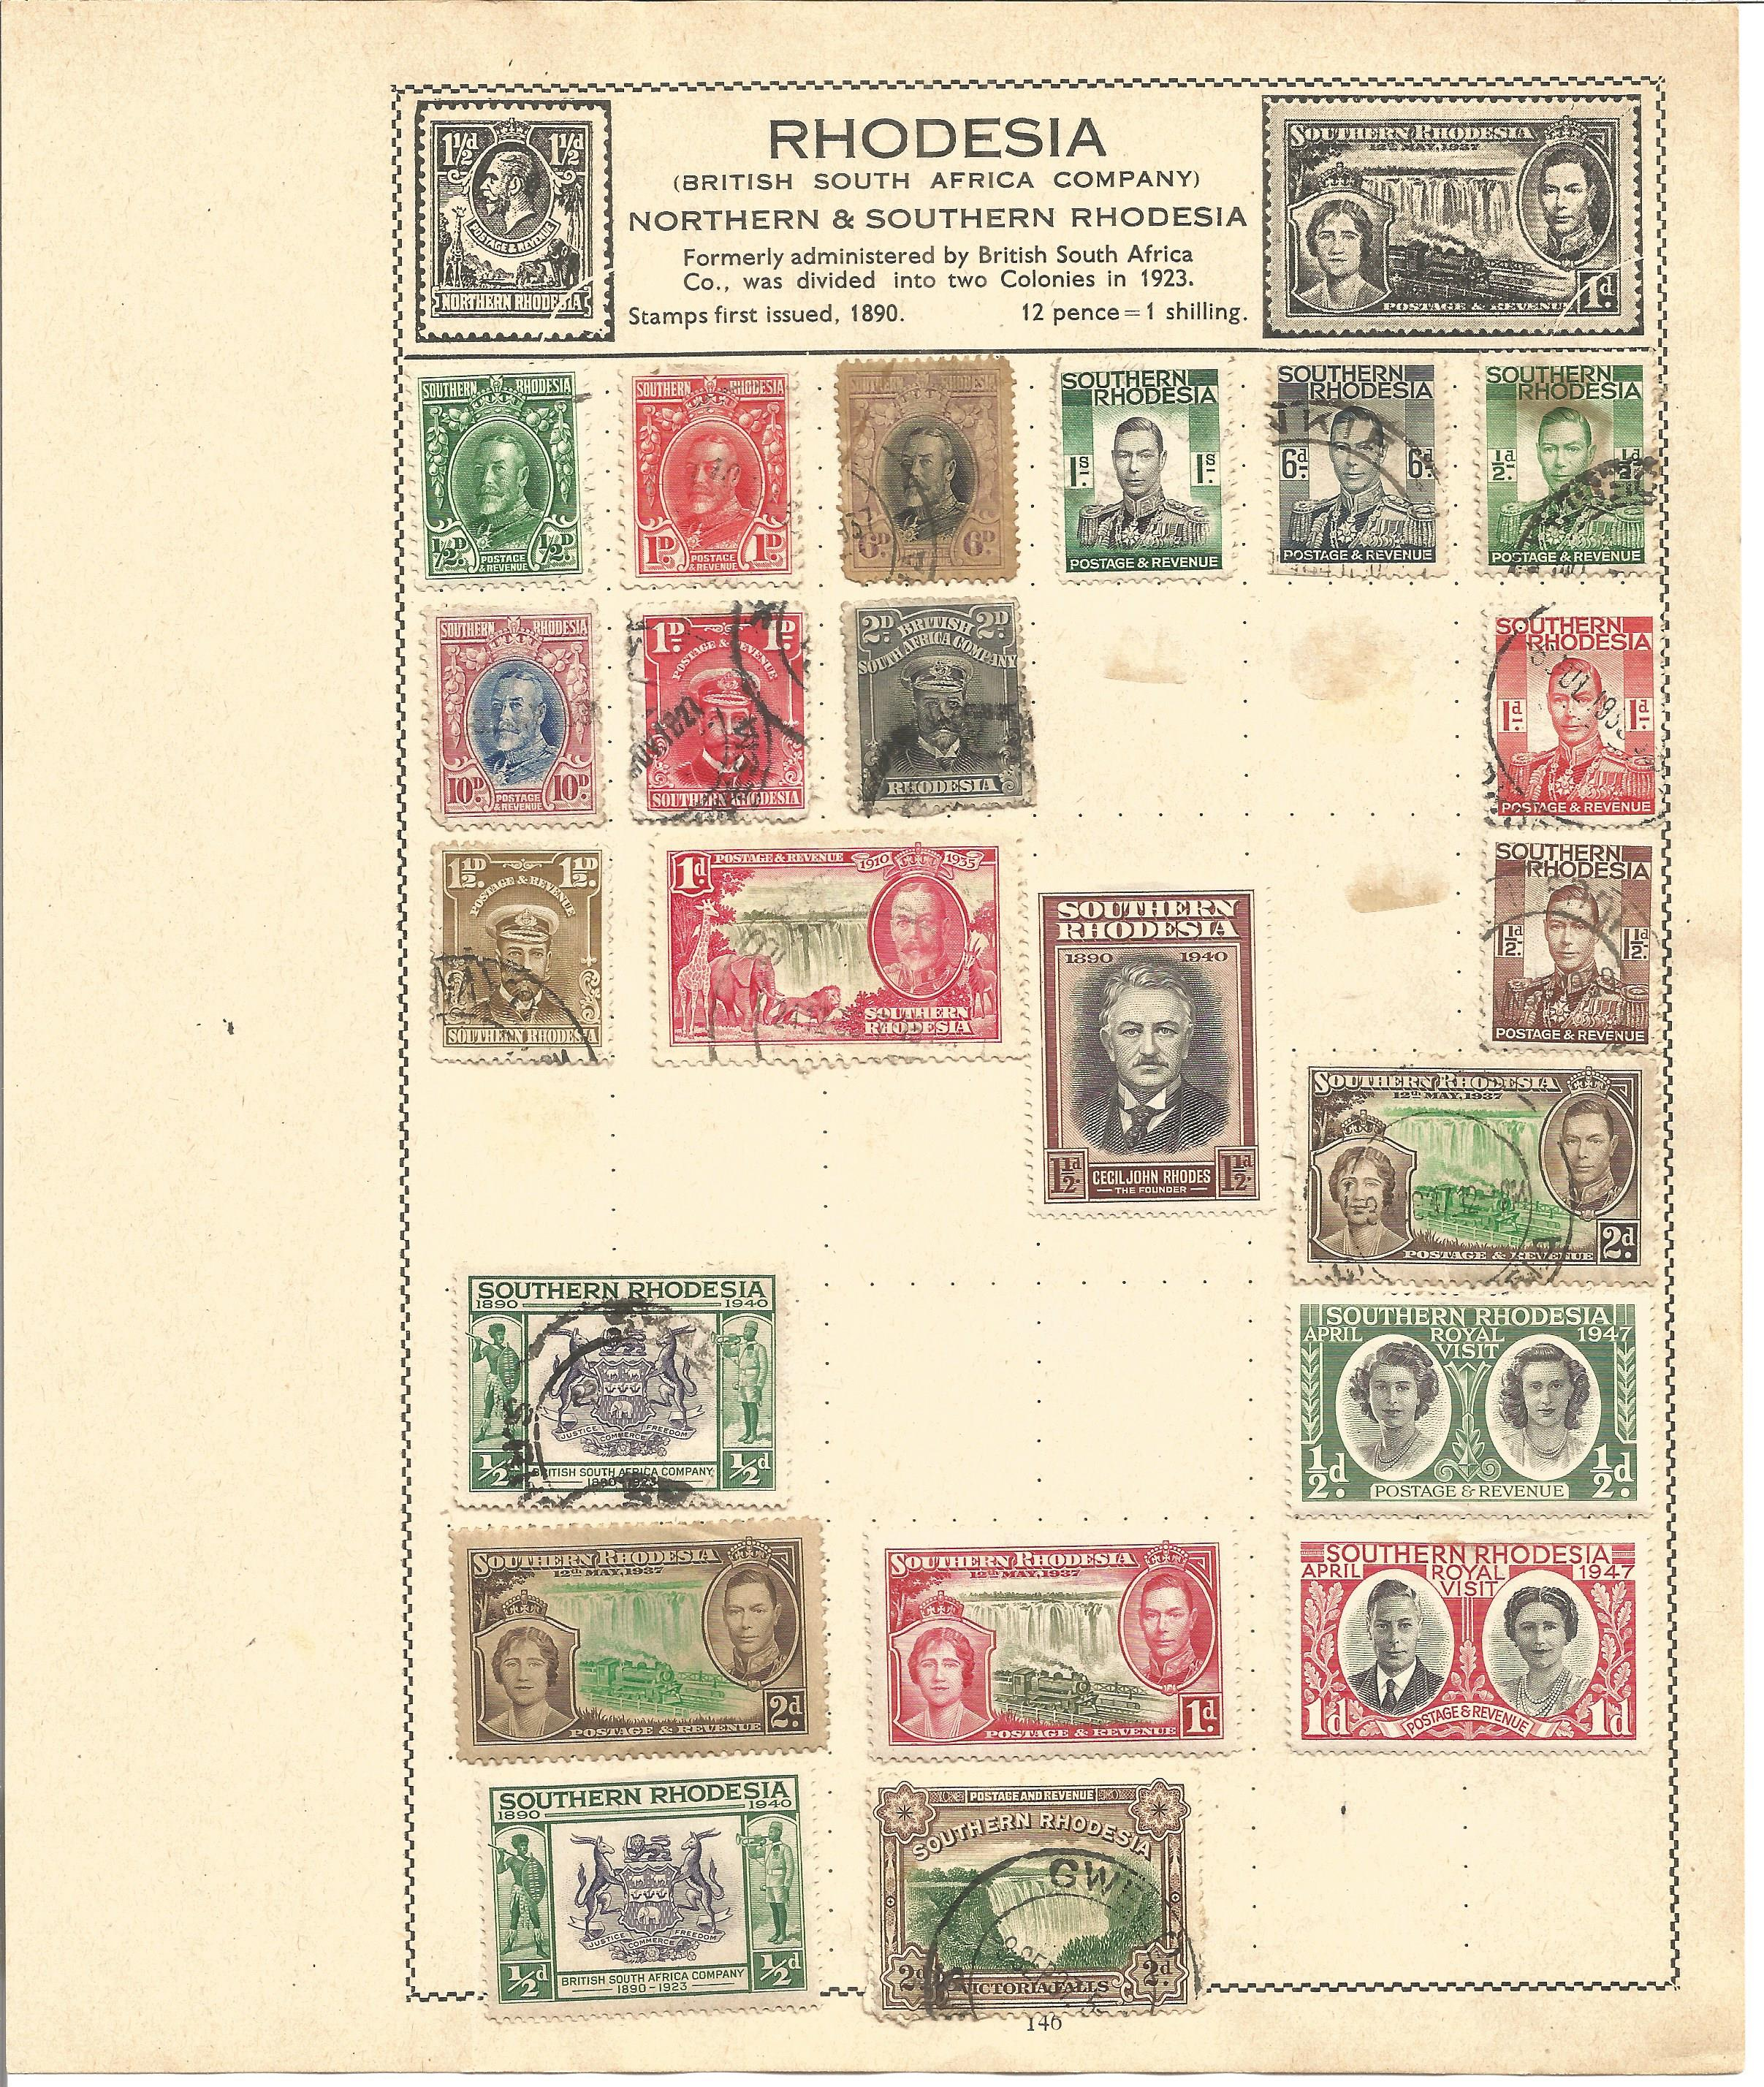 British Commonwealth stamp collection 7 loose album leaves countries include North Borneo, - Image 3 of 3